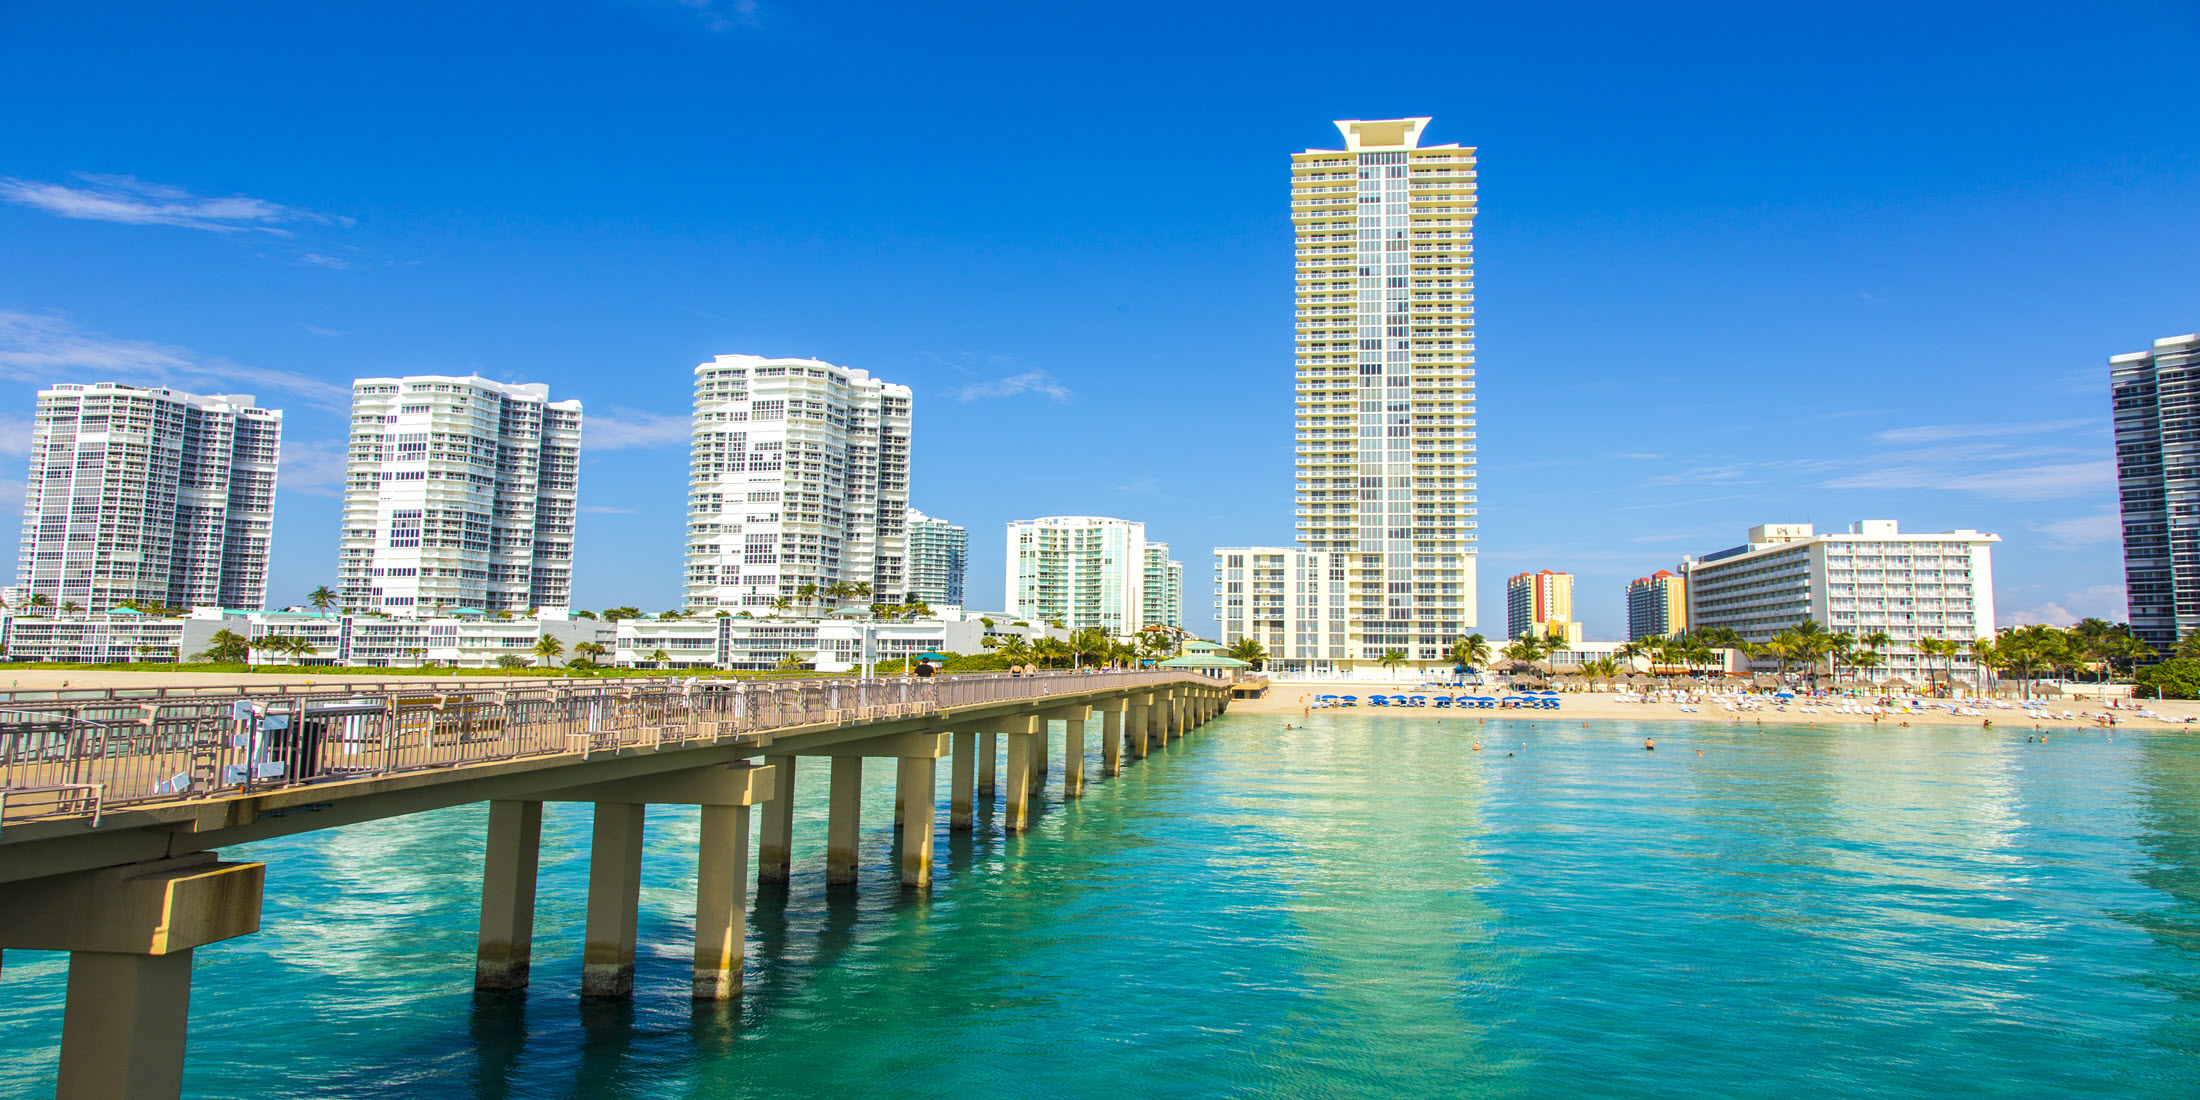 Indian Harbor Beach Fl To Fort Lauderdale